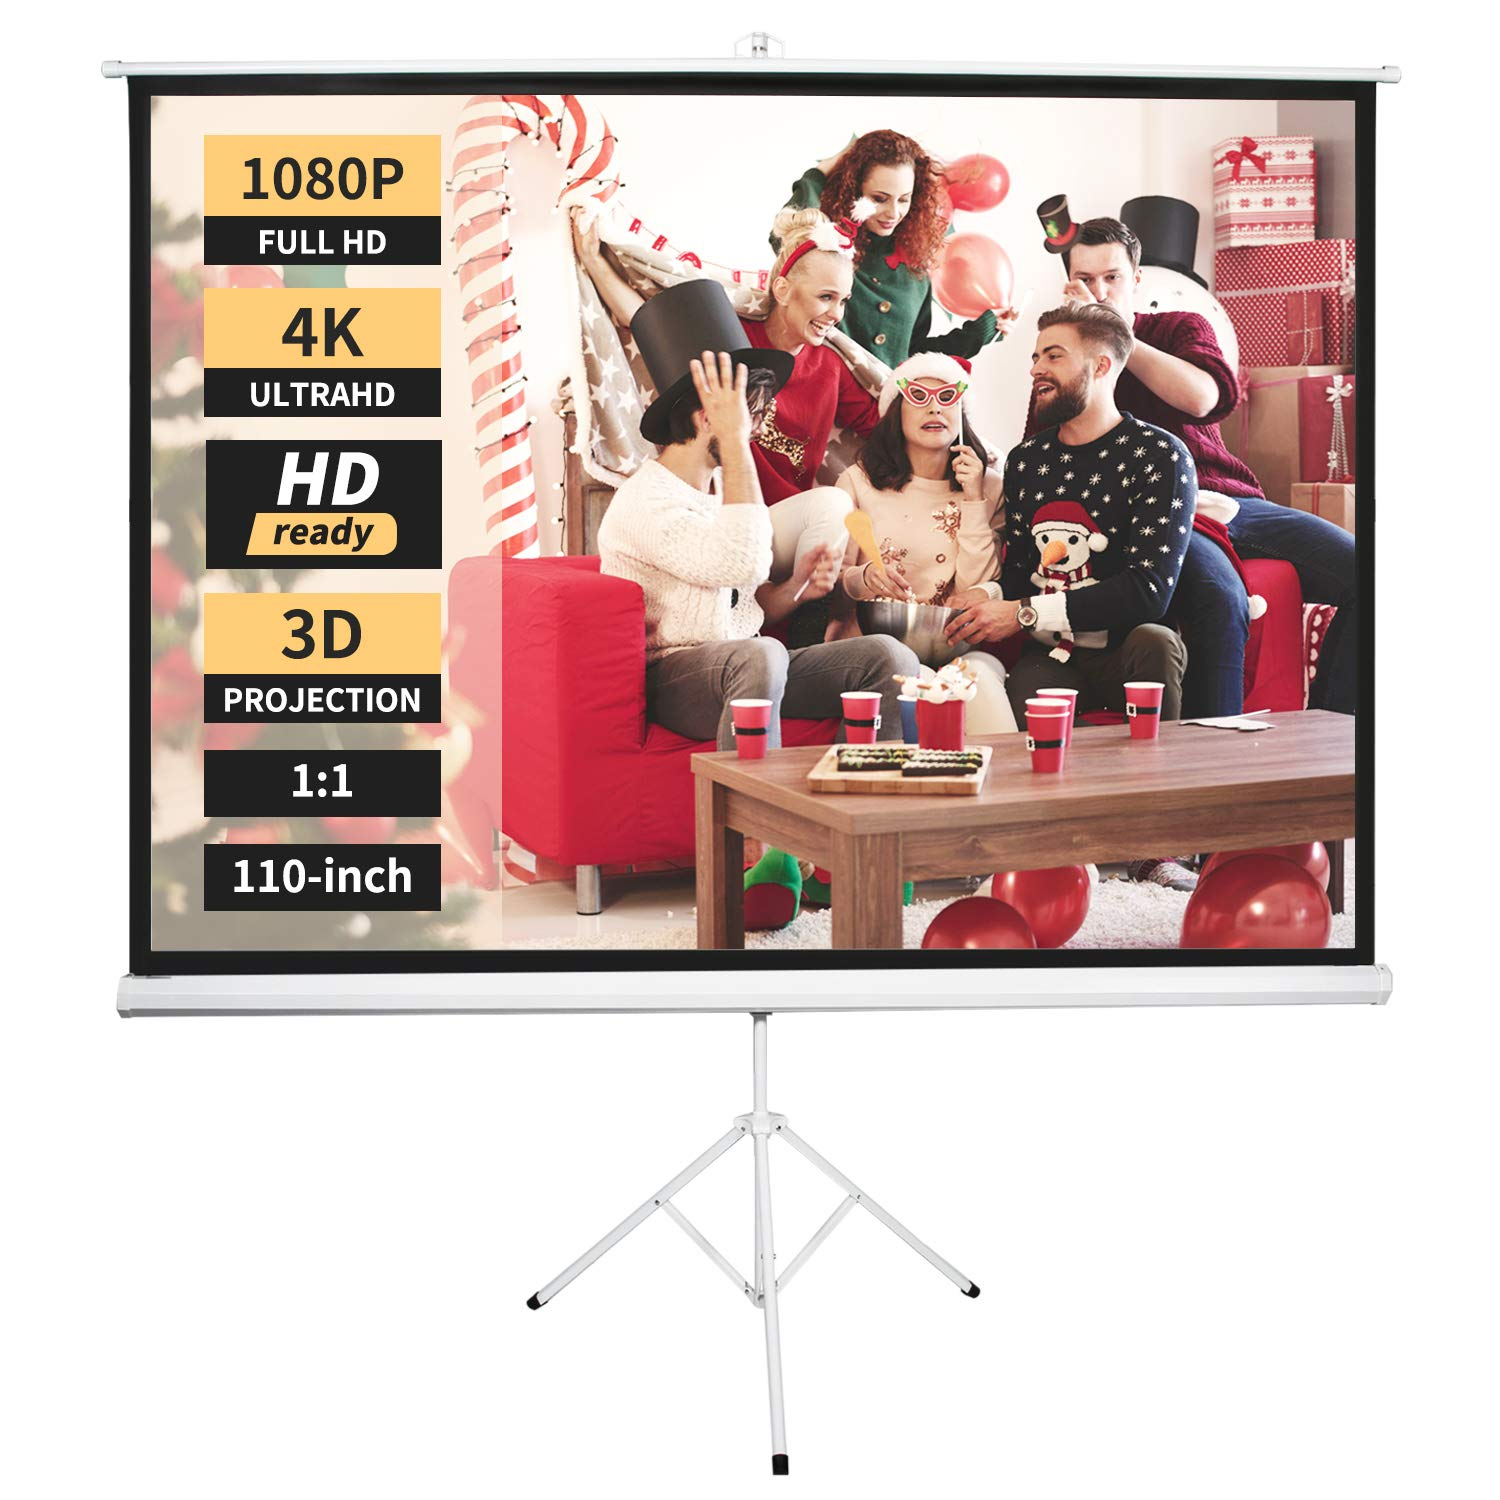 Neewer Projector Screen with Stand, Indoor Outdoor Projection Screen 4K HD 110-inch with Premium Wrinkle-Free Design: 1.1 Gain, 160° Viewing Angle, Foldable Portable (No Carrying Bag)